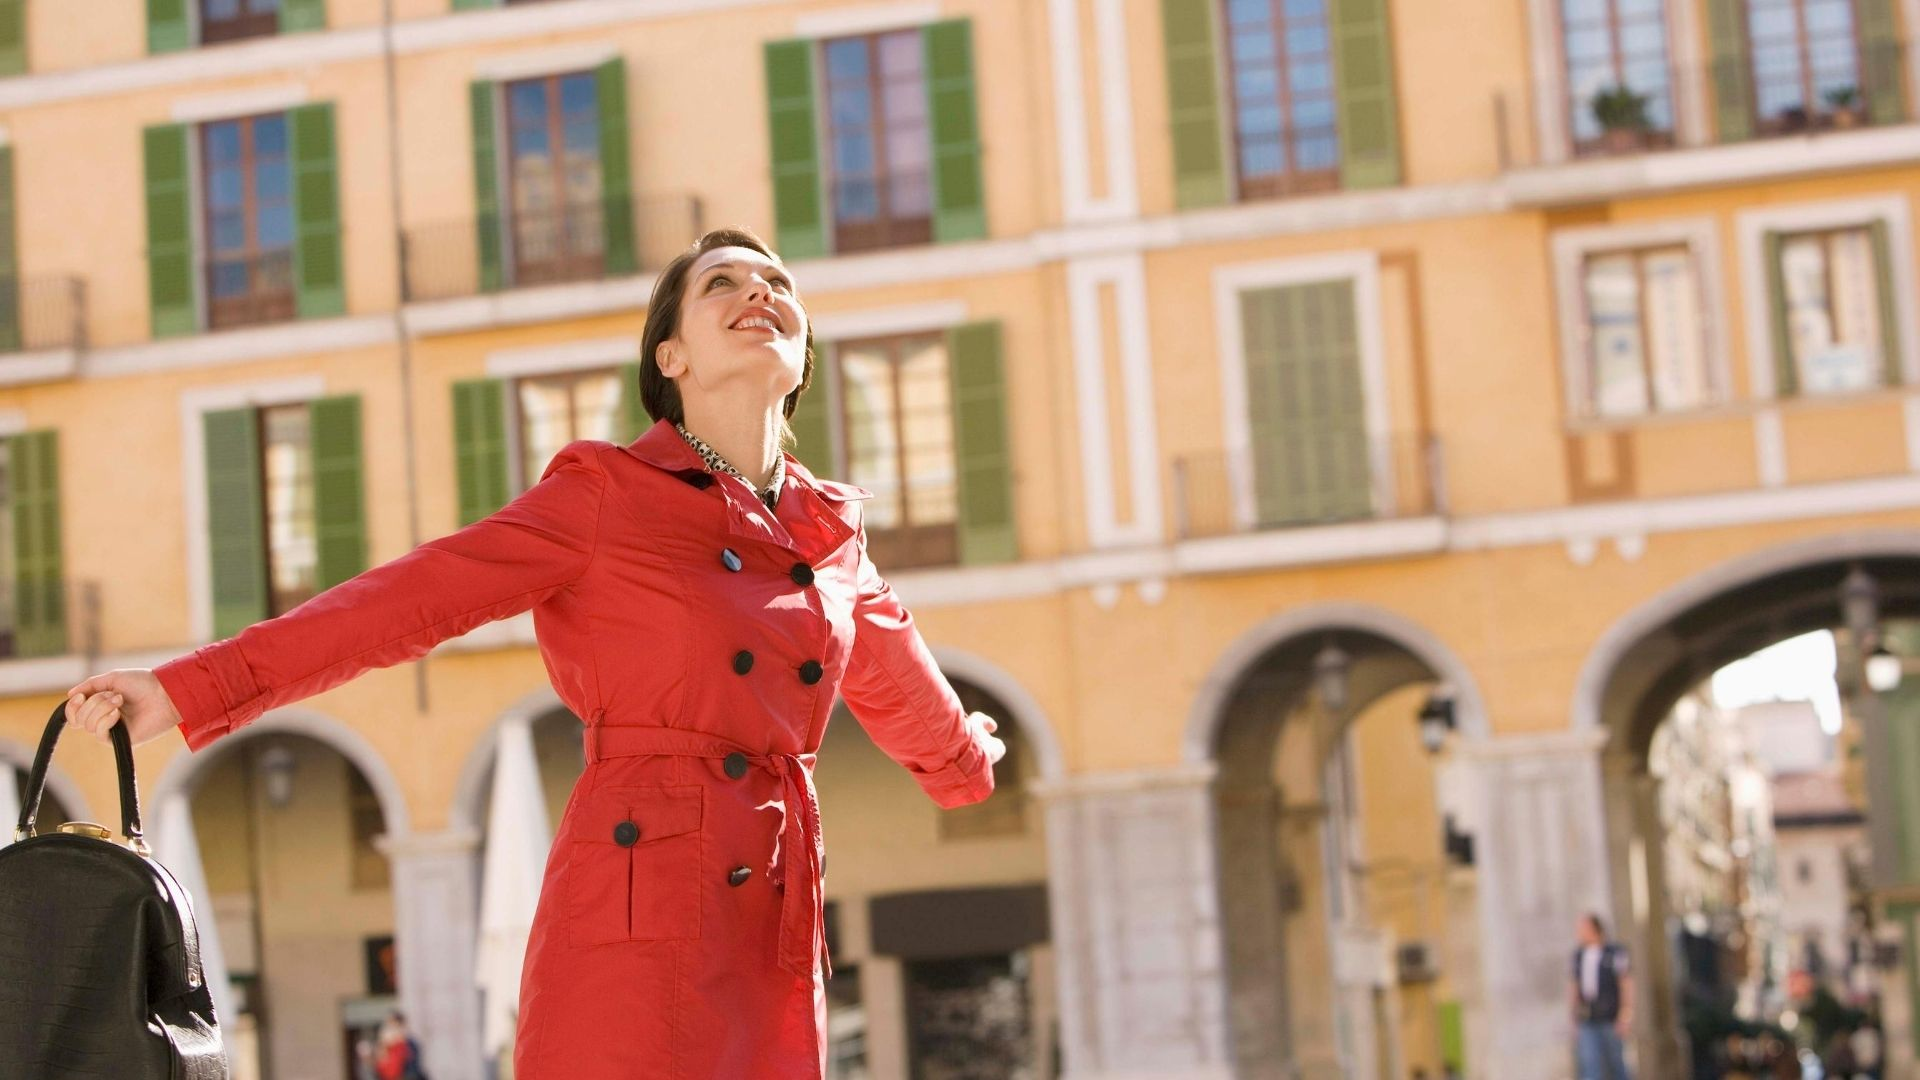 Woman wearing a red trench coat stretches out her arms and looks up to the sky with a smile on her face.